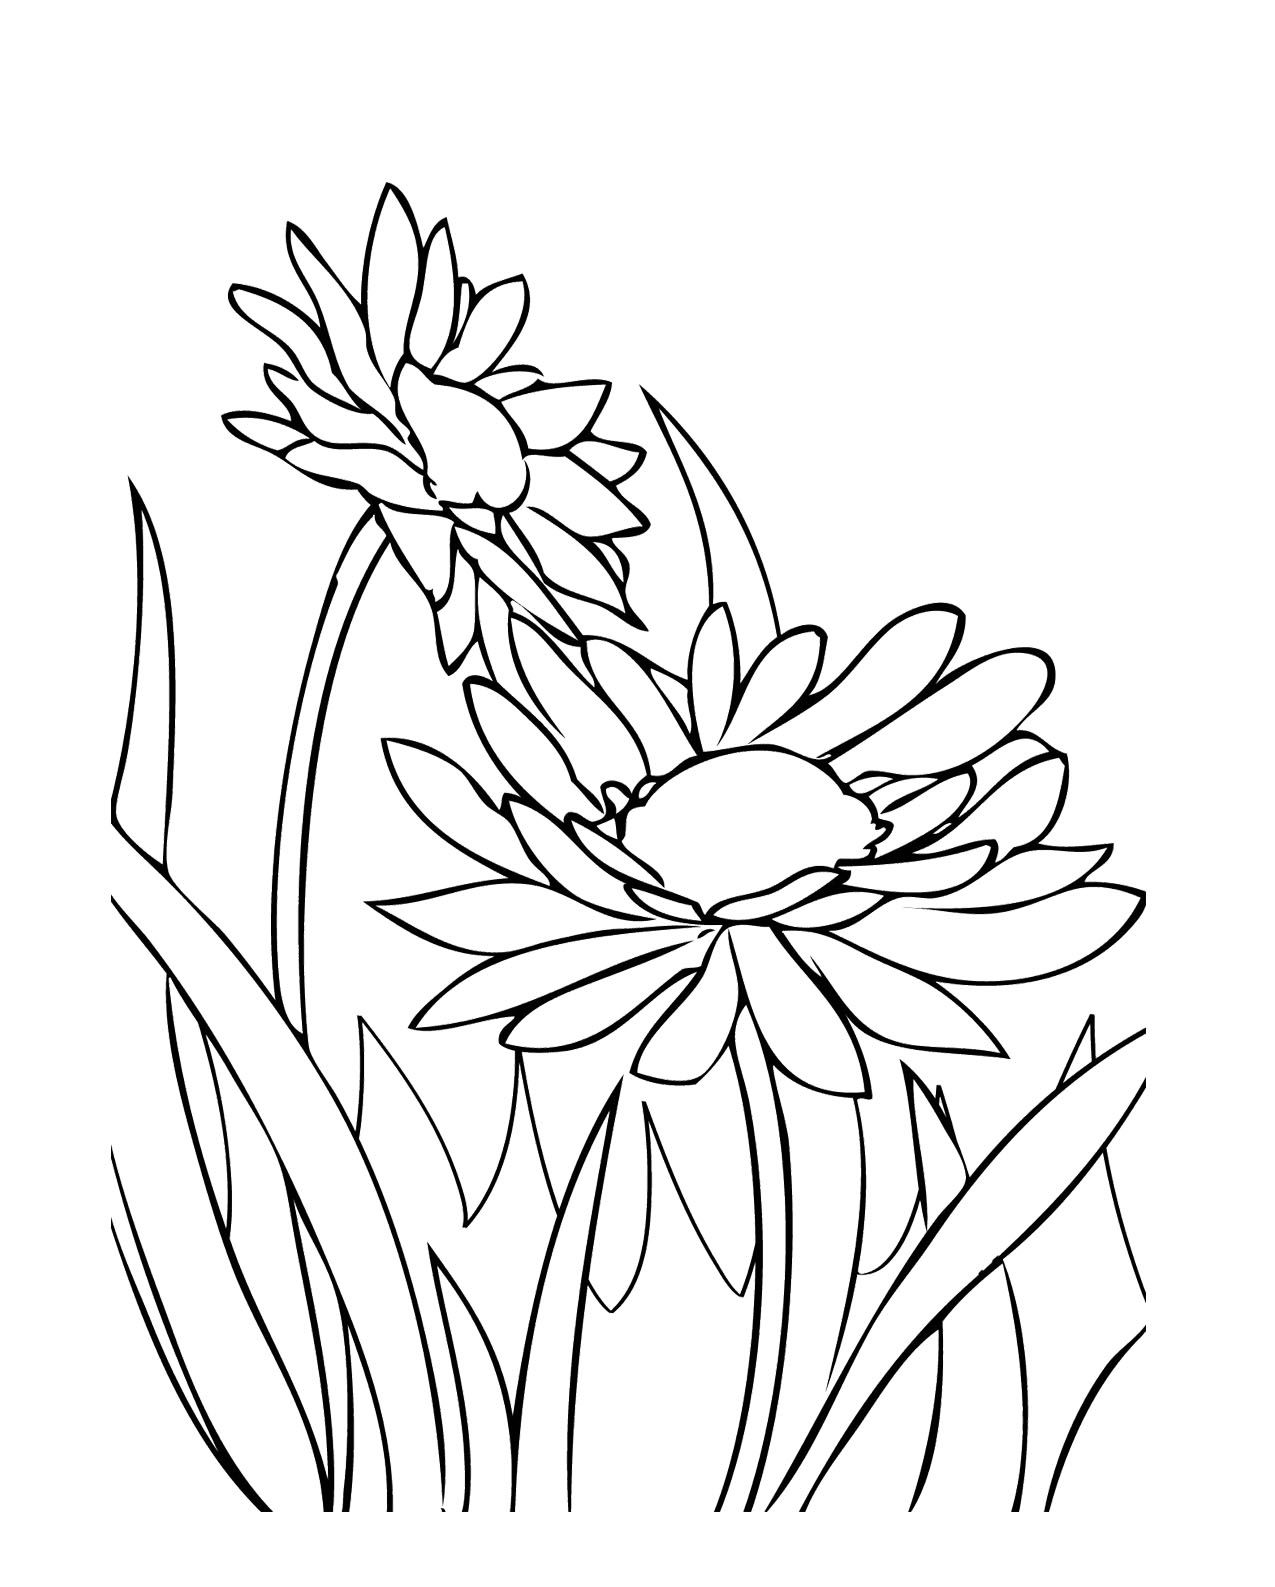 Growing Spring Flowers Coloring Pages